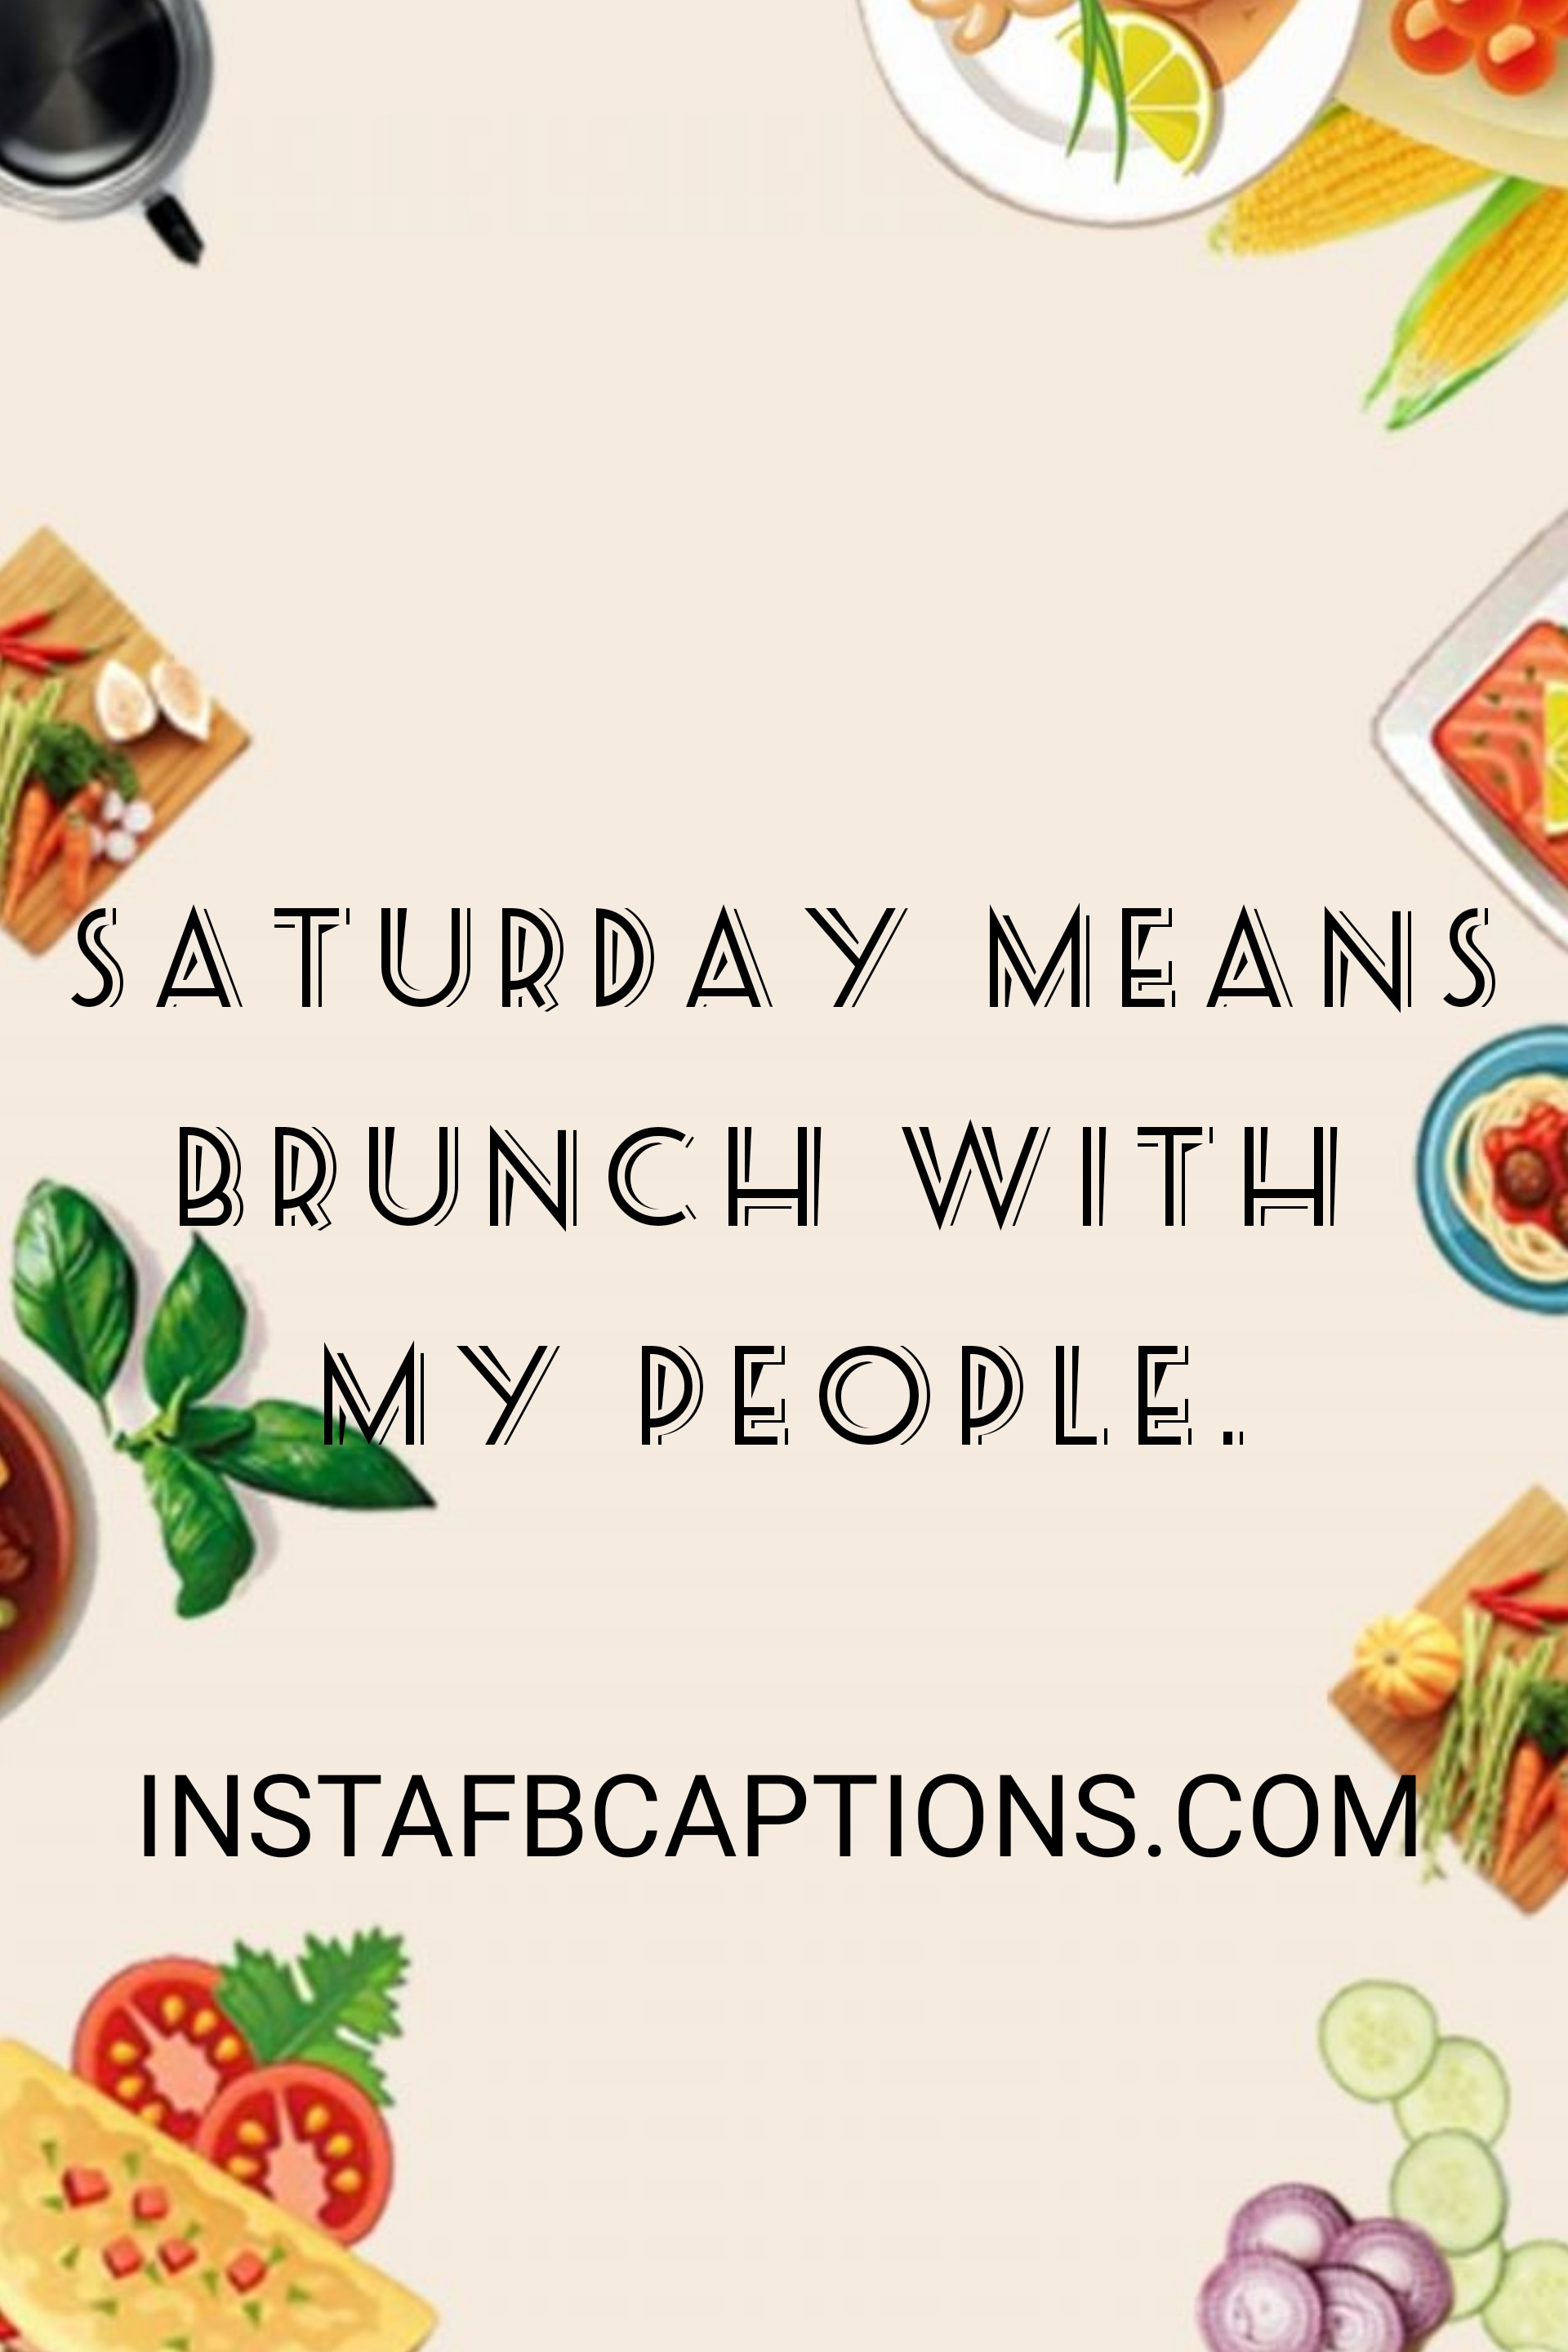 A Tuesday Means Brunch With My People  - a tuesday means brunch with my people - 500+ Weekend Captions (Friends Long Trip Food Throwback)